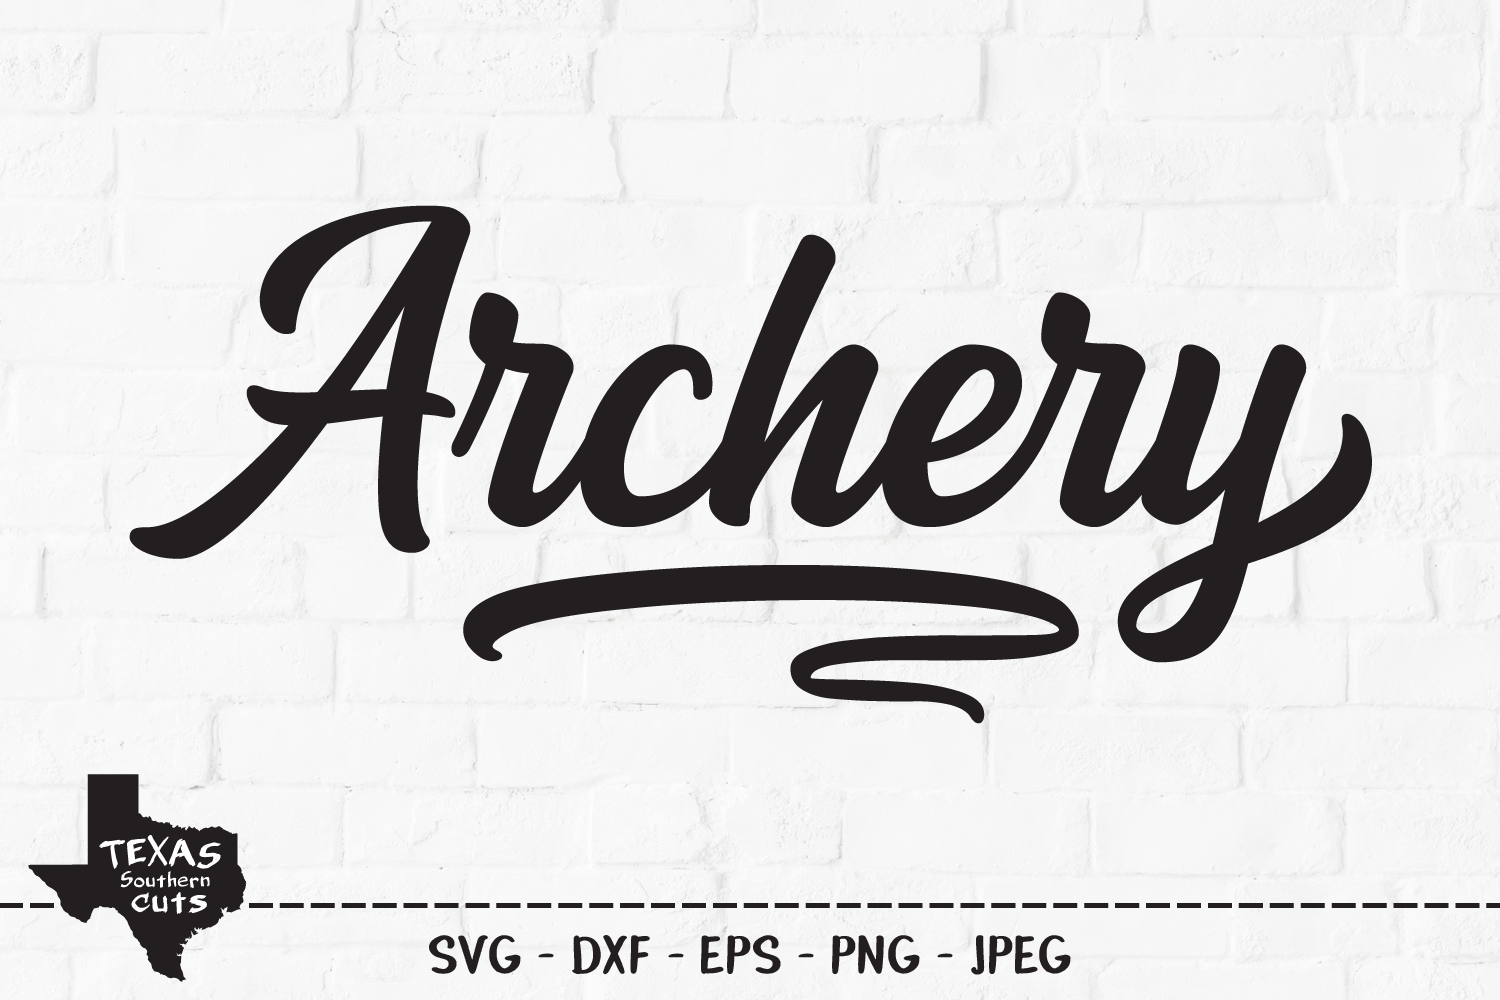 Download Free Archery Archer Shirt Design Graphic By Texassoutherncuts for Cricut Explore, Silhouette and other cutting machines.